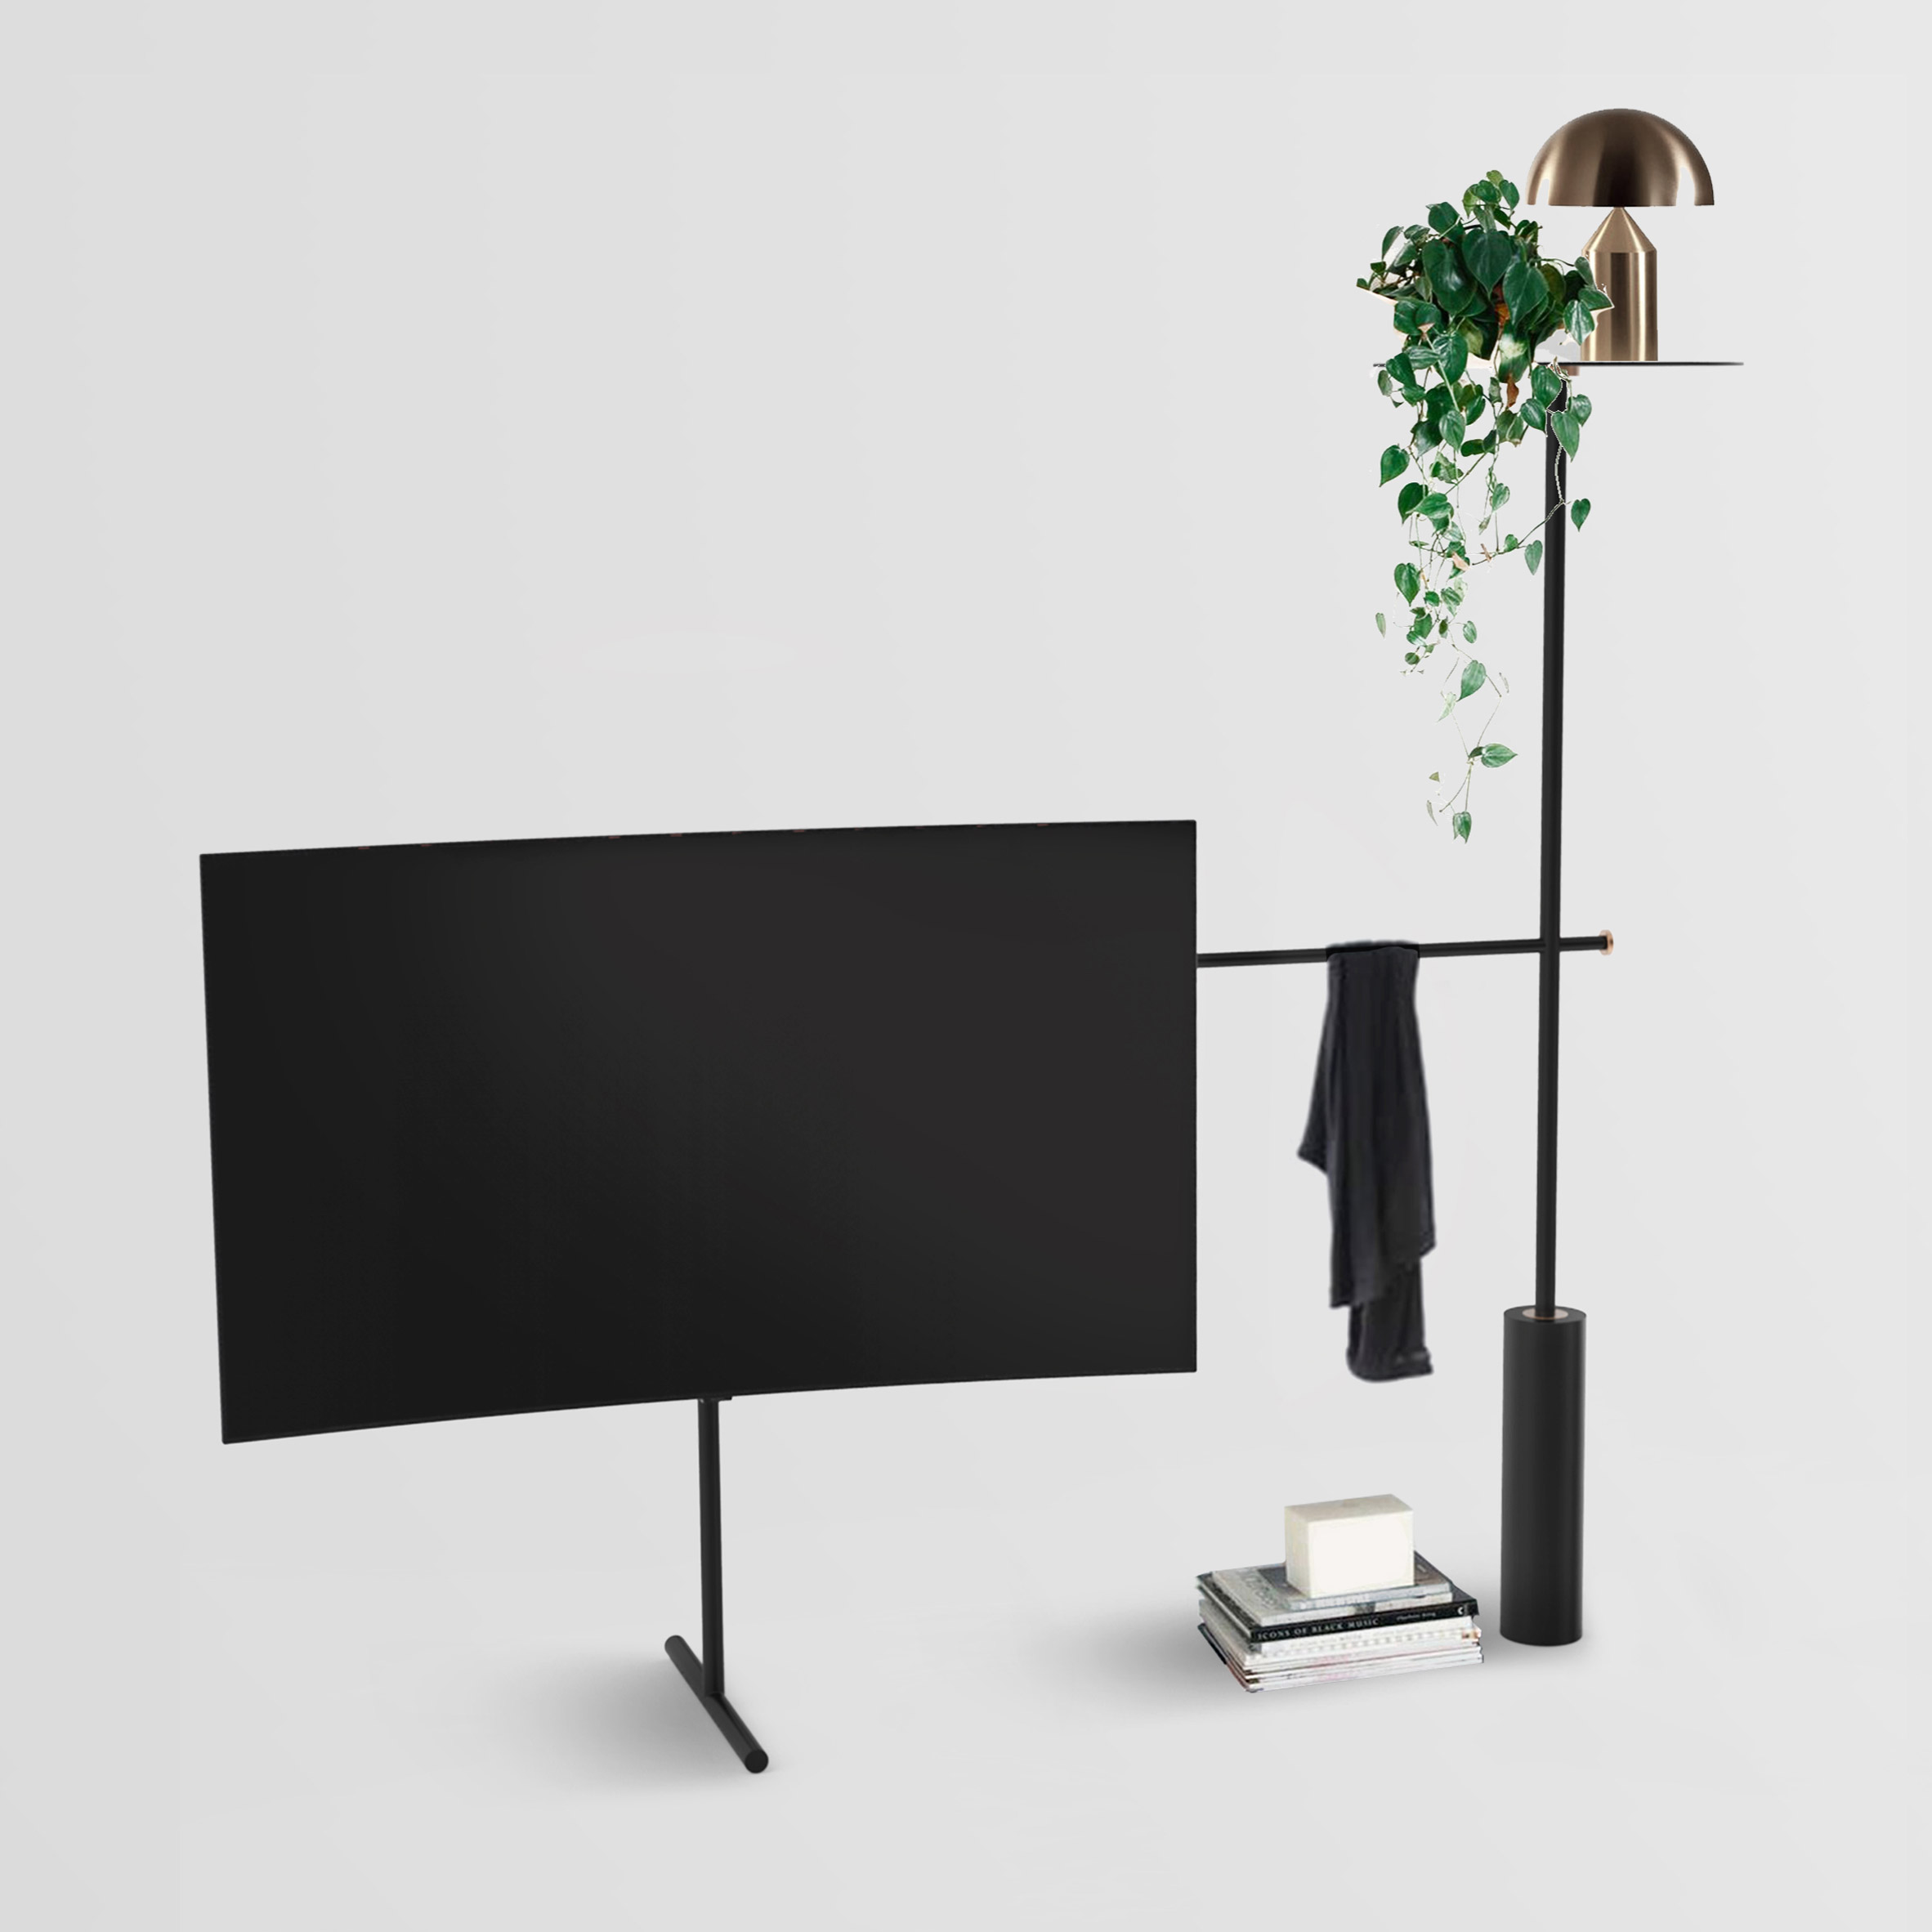 Plants, pulleys and a surfboard among shortlist for Dezeen and Samsung's TV stand design contest